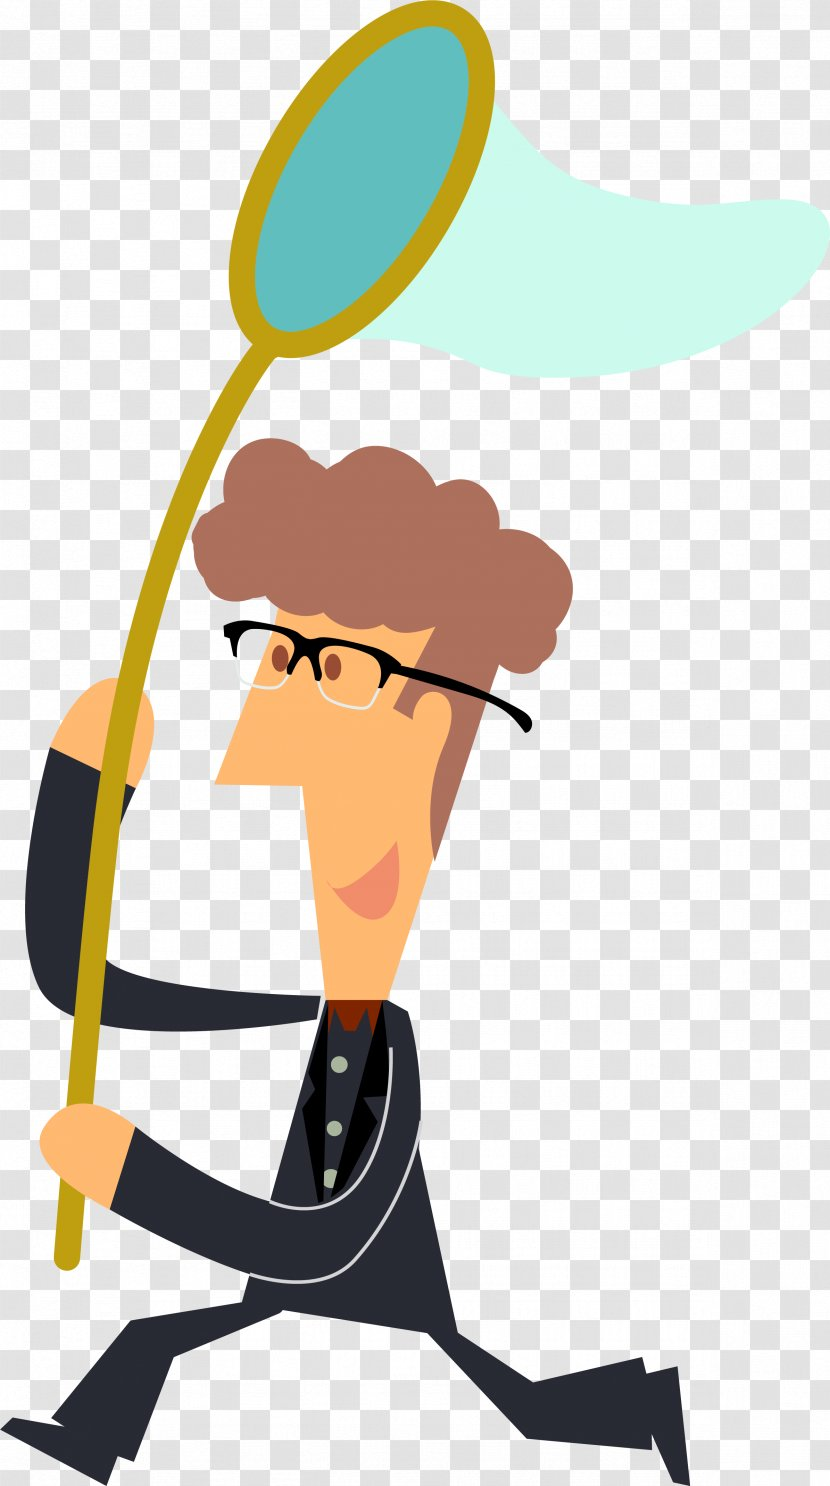 Adobe Illustrator Time Management Male Cartoon Business People Transparent Png